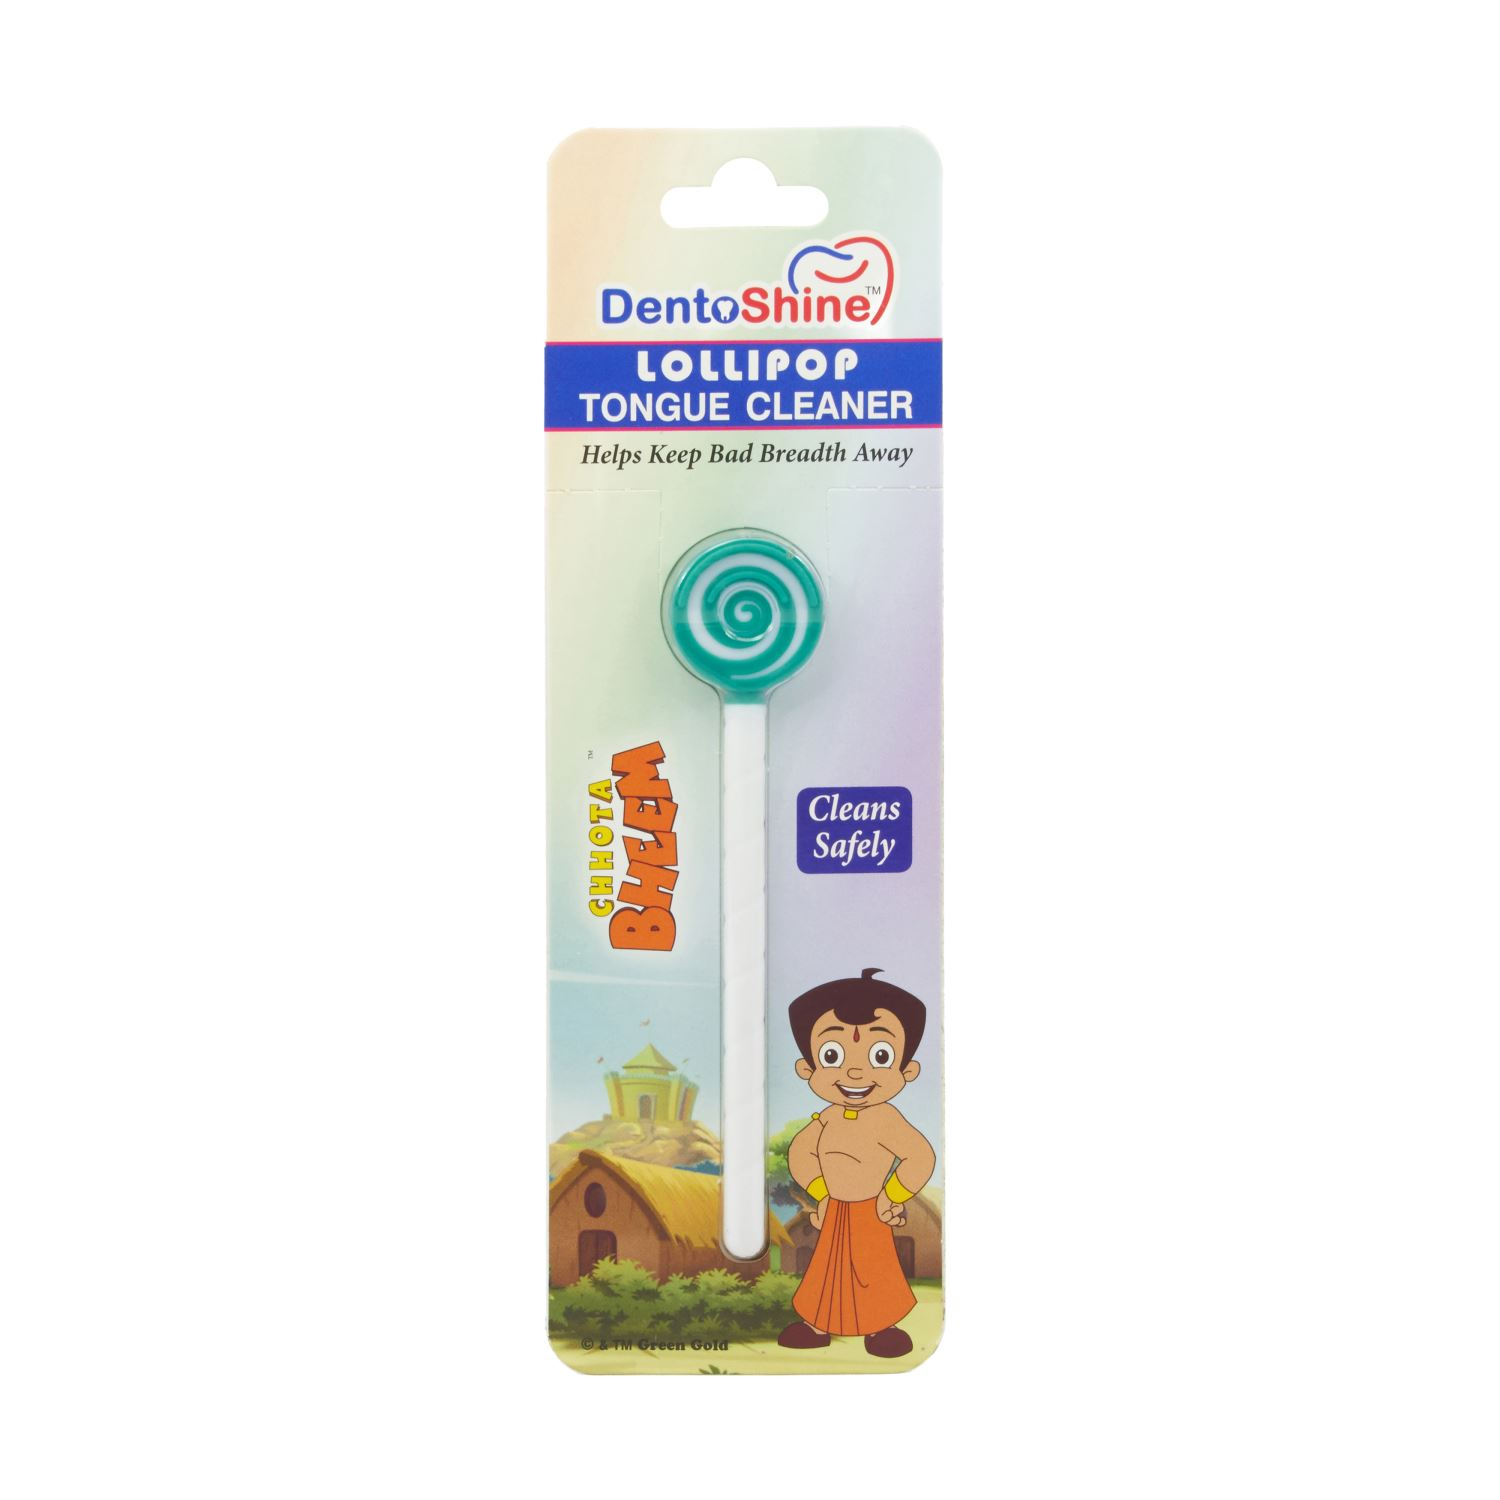 Dentoshine Lollipop Tongue Cleaner